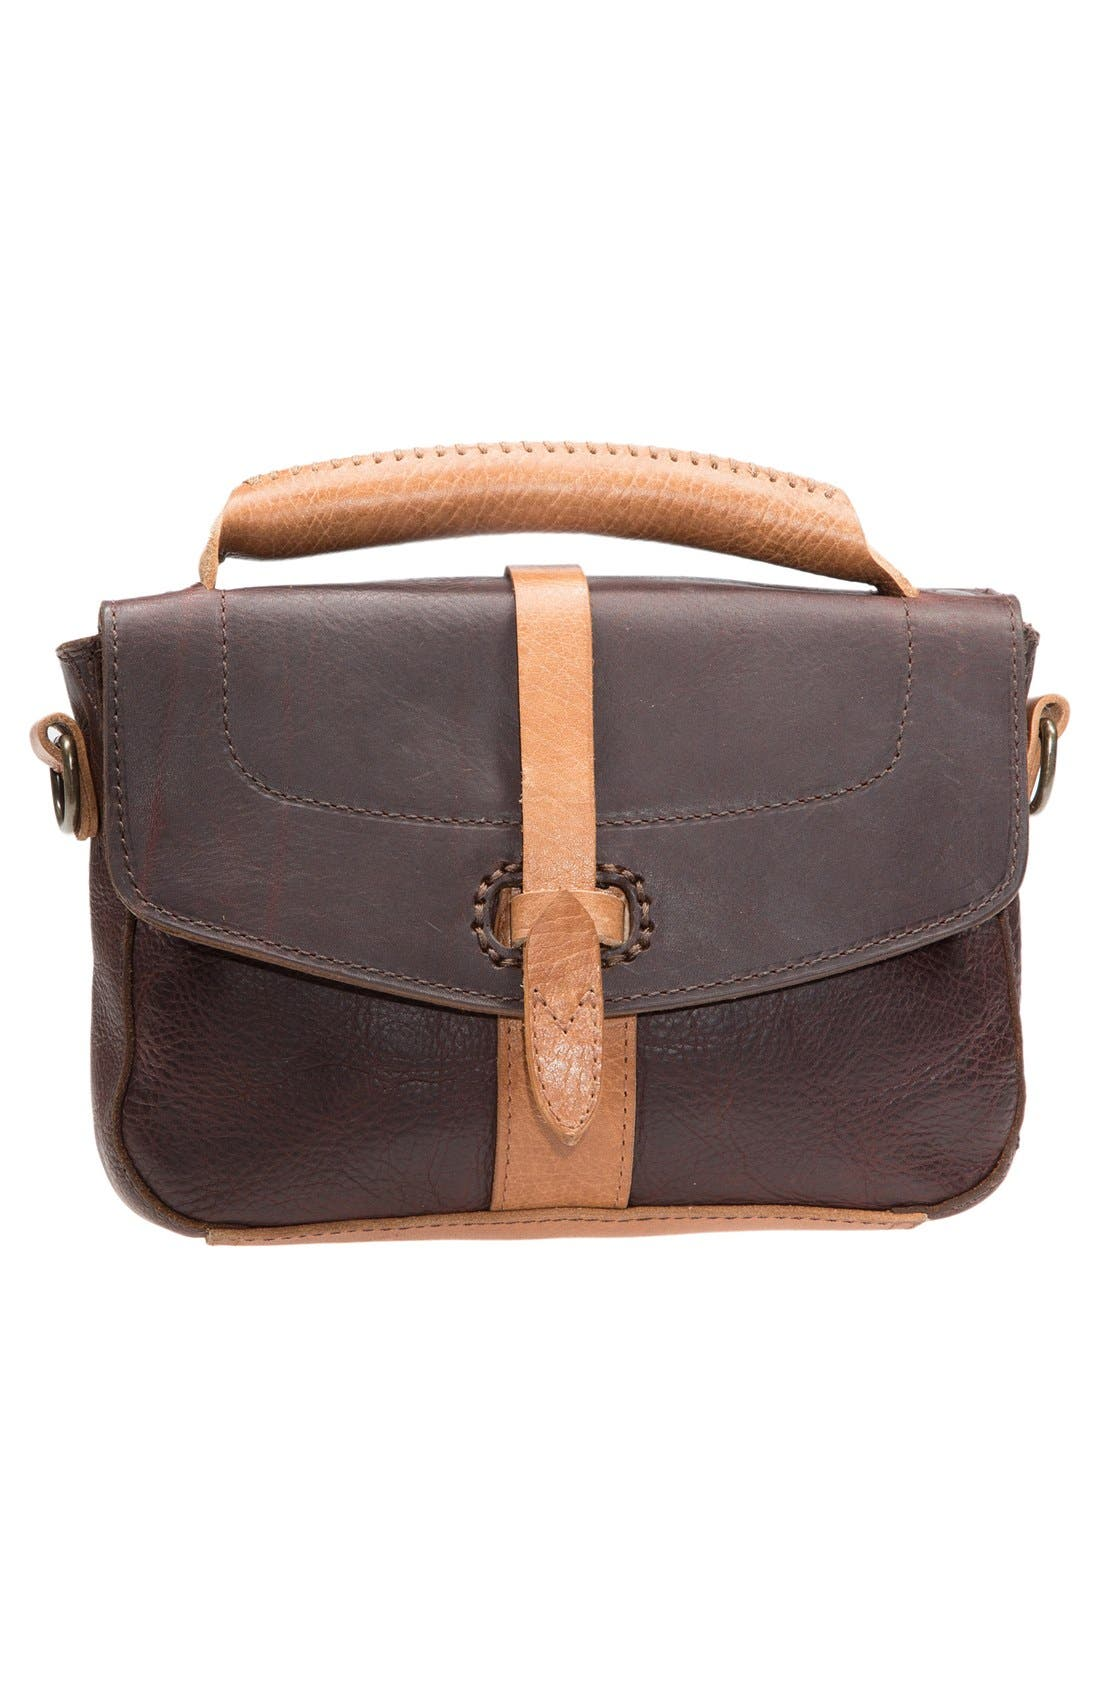 Main Image - Will Leather Goods 'Athena' Leather Crossbody Bag